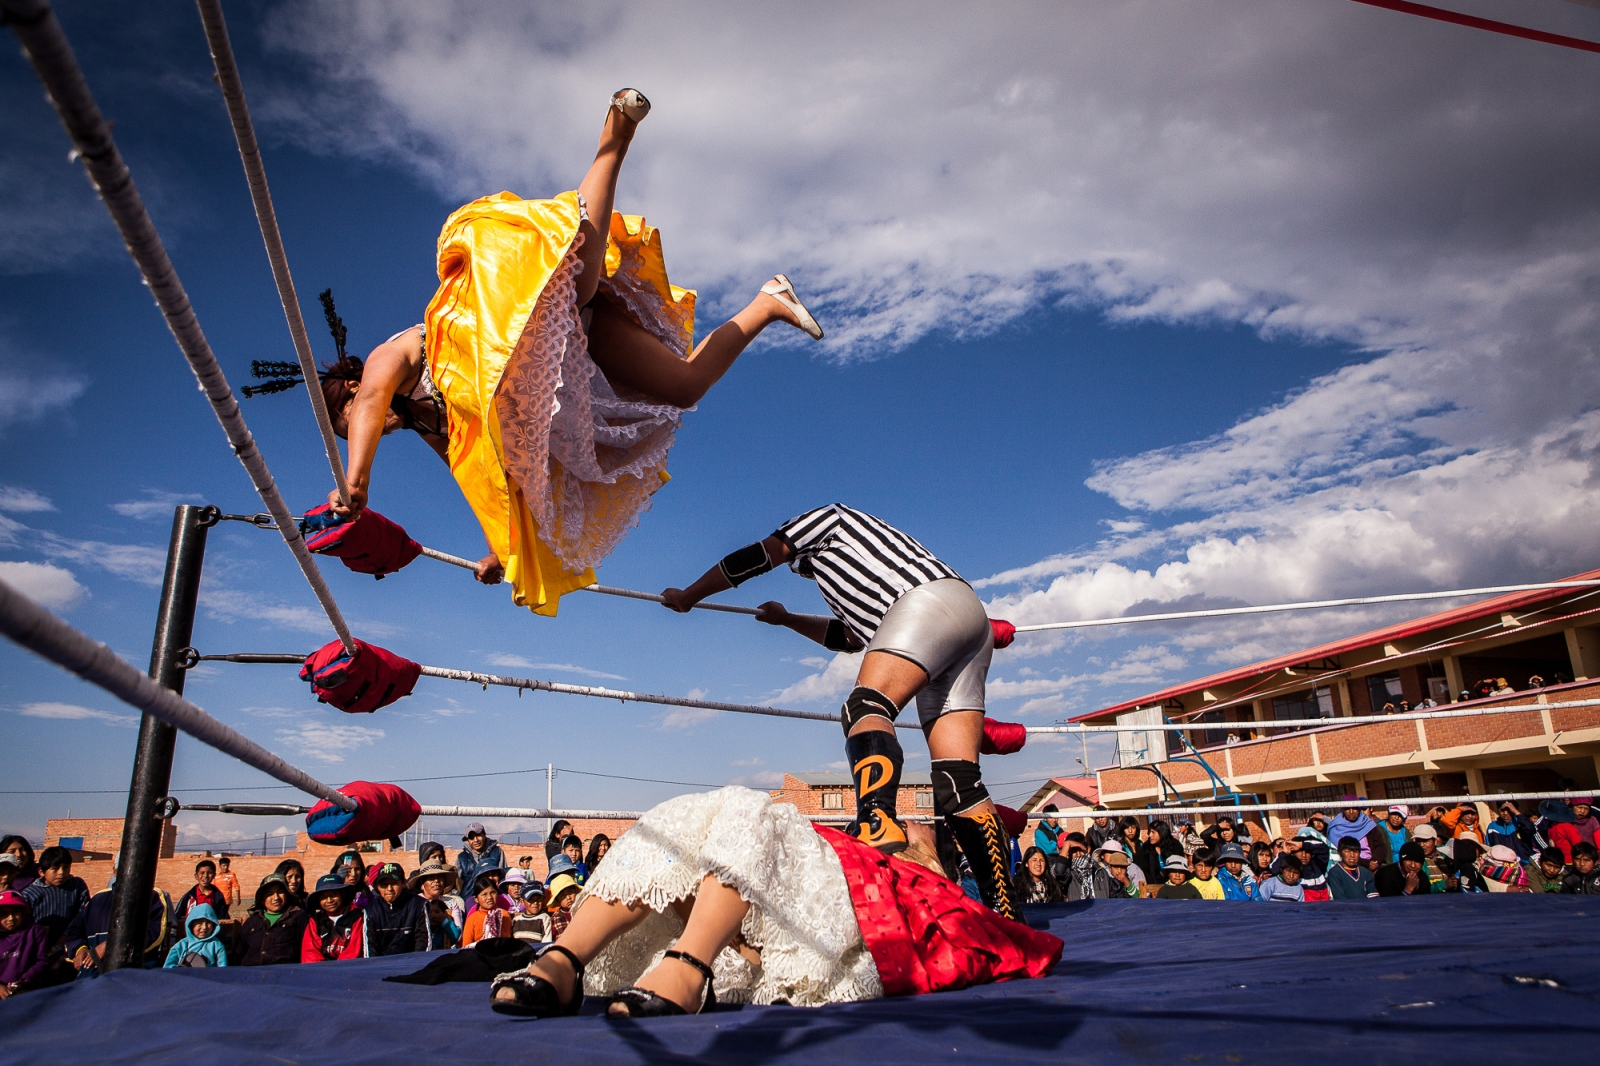 Silvina La Poderosa jumps from a corner of the ring to land on her opponent, Reyna Torres, during a promotional fight in Senkata, El Alto. After years of dwindling audiences, and in an attempt to revive public interest, wrestling finally allowed indigenous women to participate. The sport's popularity has since rebounded considerably.